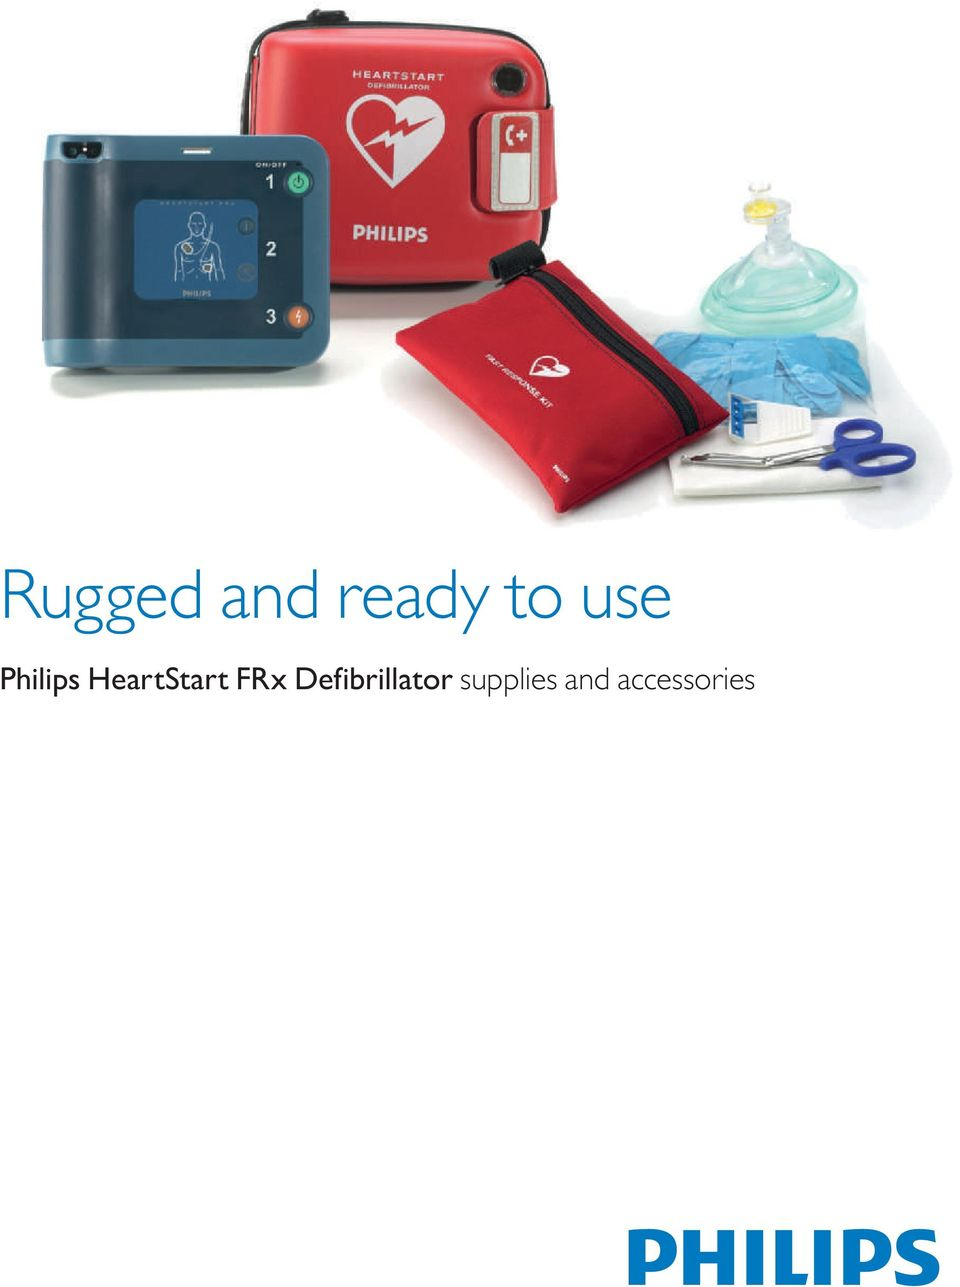 Rugged and ready to use  Philips HeartStart FRx Defibrillator